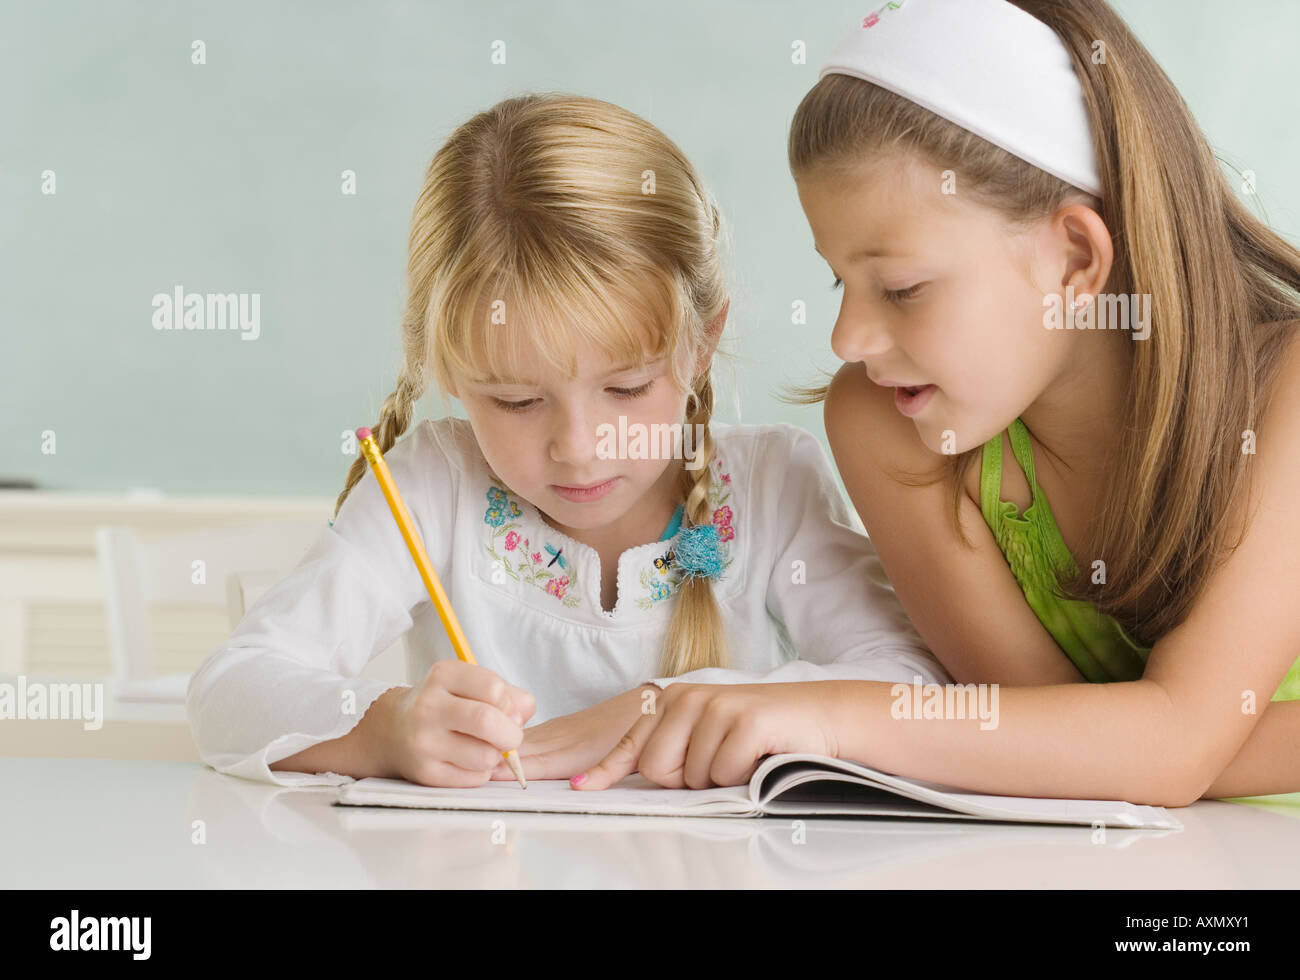 Girl helping classmate at desk - Stock Image